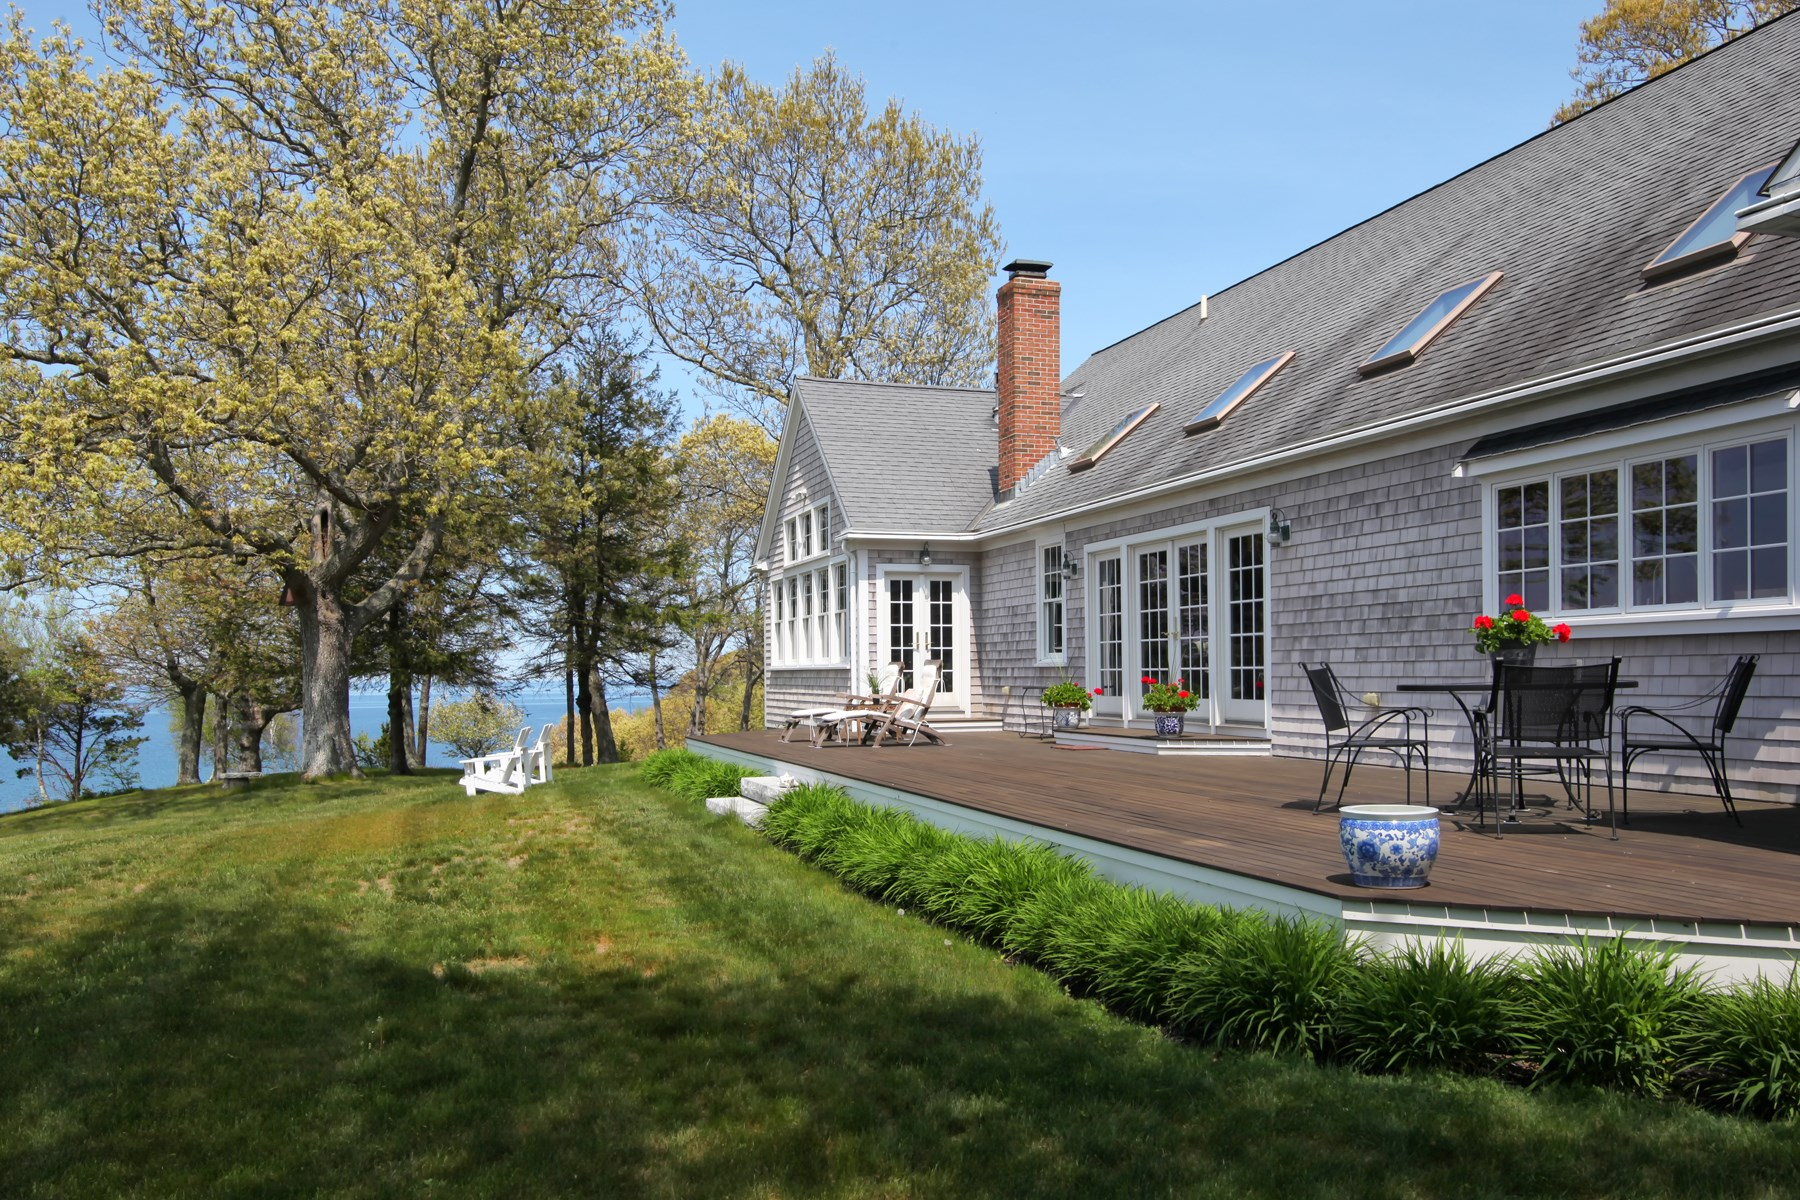 Moradia para Venda às Spectacular One Level Waterfront Home 1 Driftwood Lane Plymouth, Massachusetts, 02360 Estados Unidos